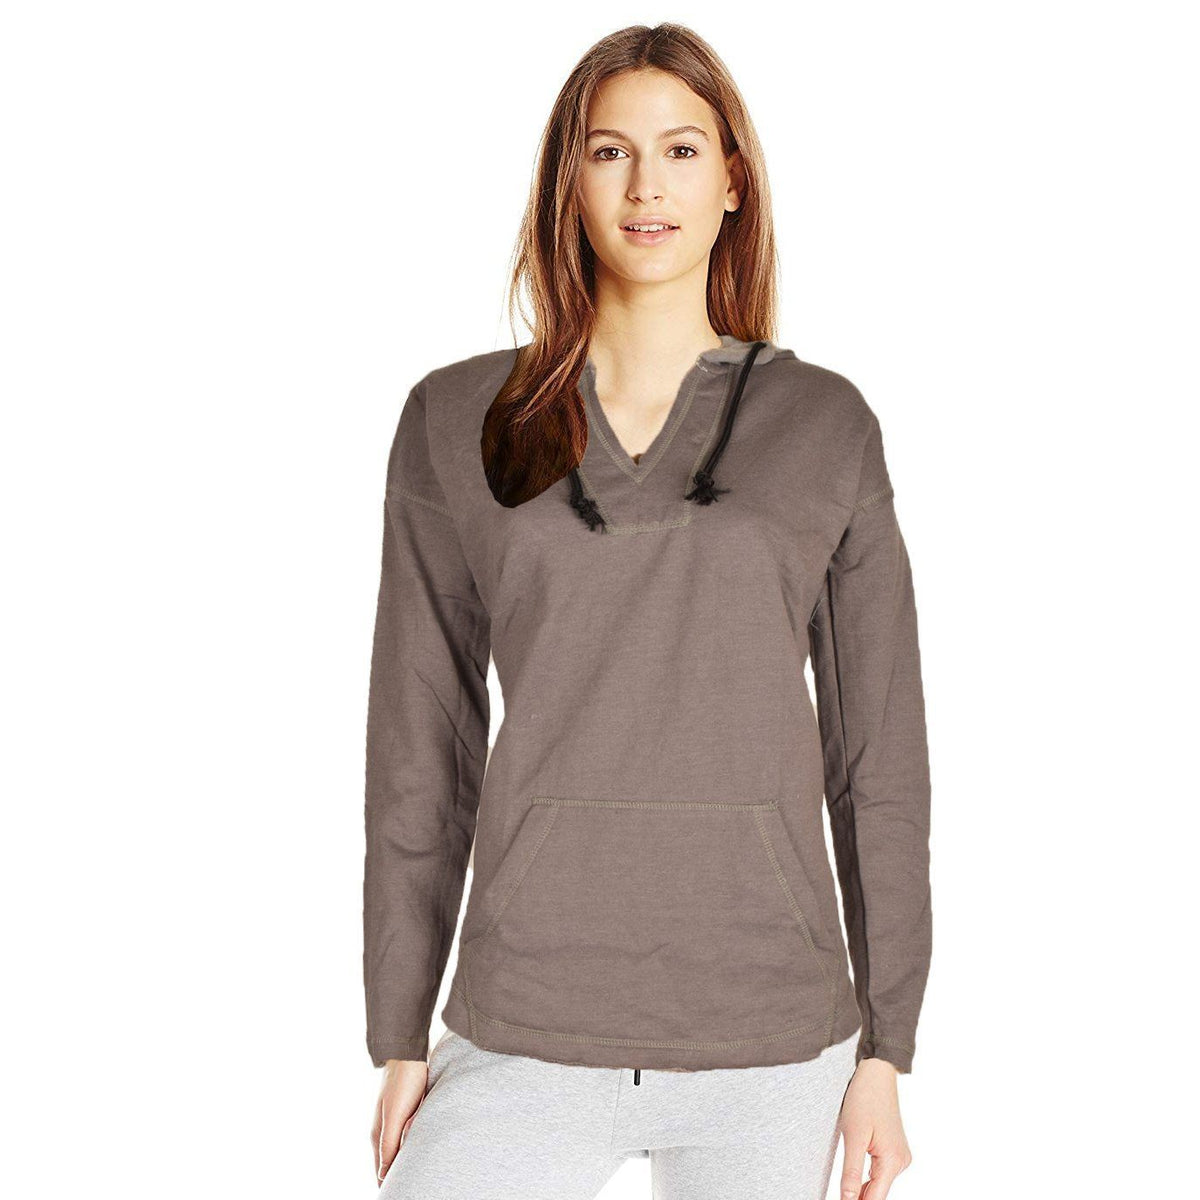 J4W Women's Classic V-Neck Cropped Hoodie Women's Pullover Hoodie SRK Graphite S